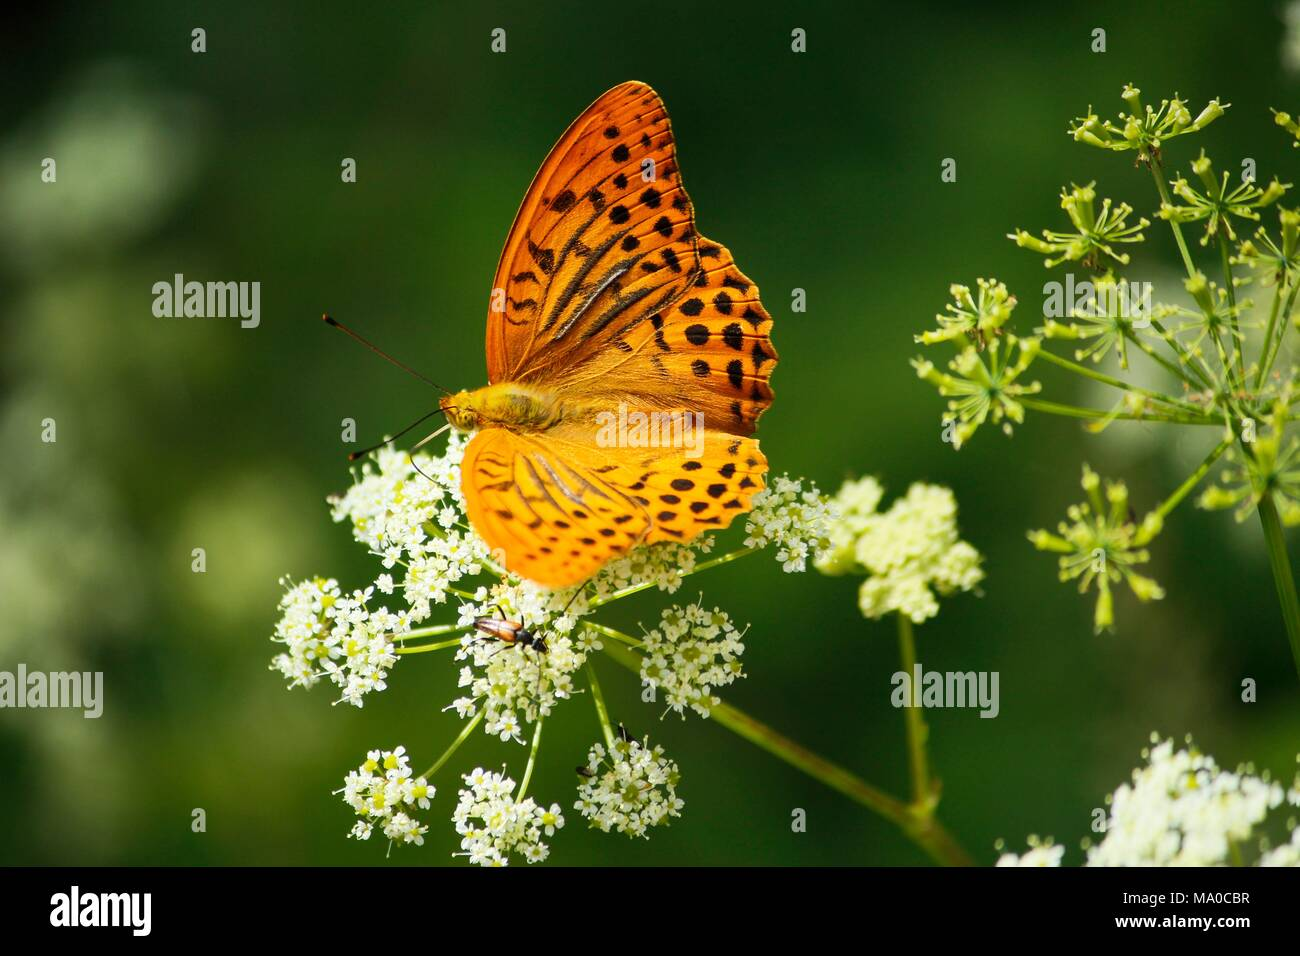 A beautiful butterfly on flower - Stock Image